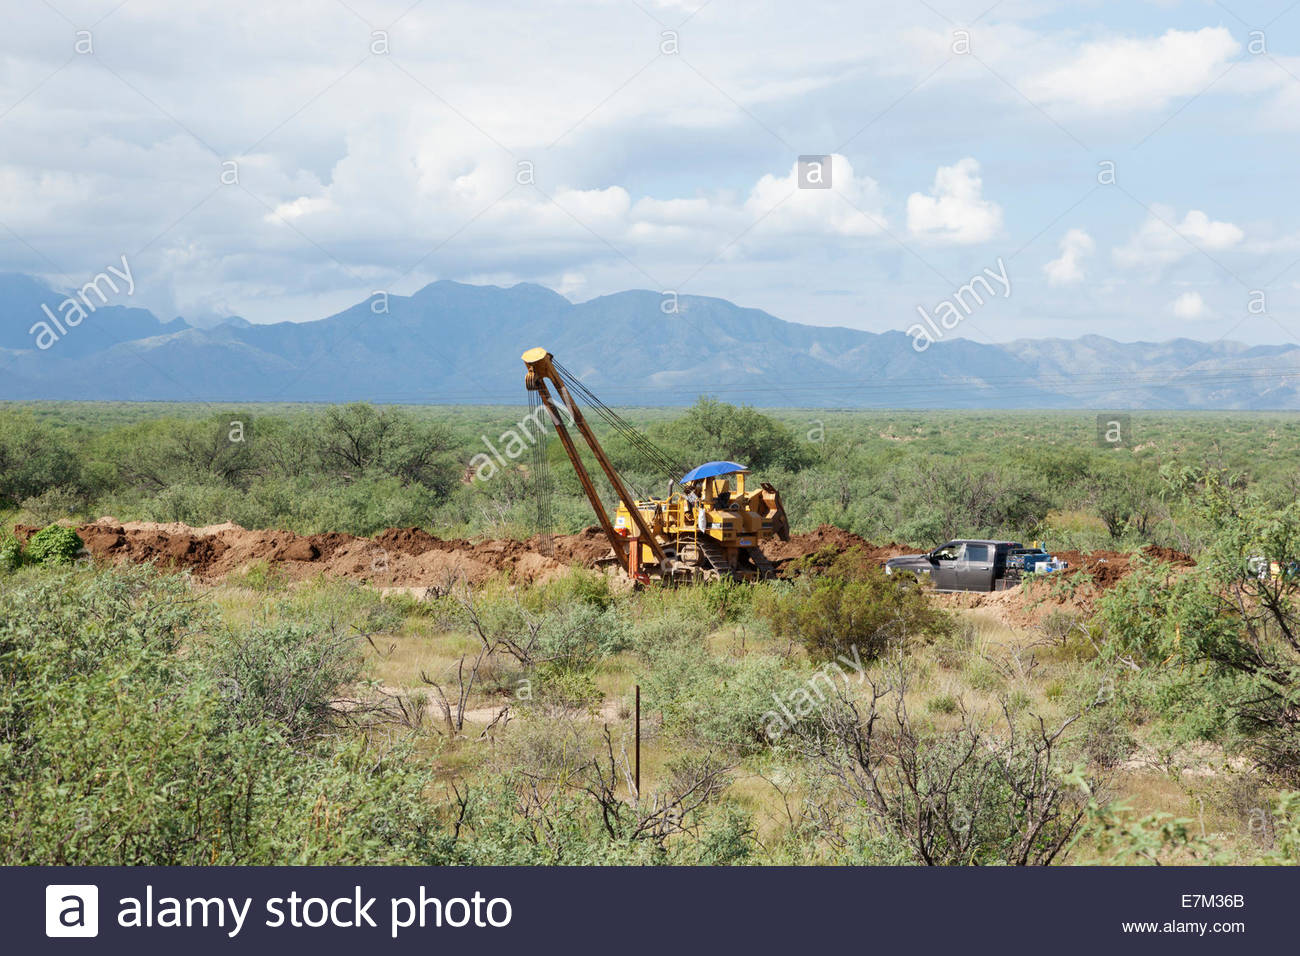 caterpillar cat sideboom pipelayer 583t pipeline construction welding machine on pickup truck operator visible arizona